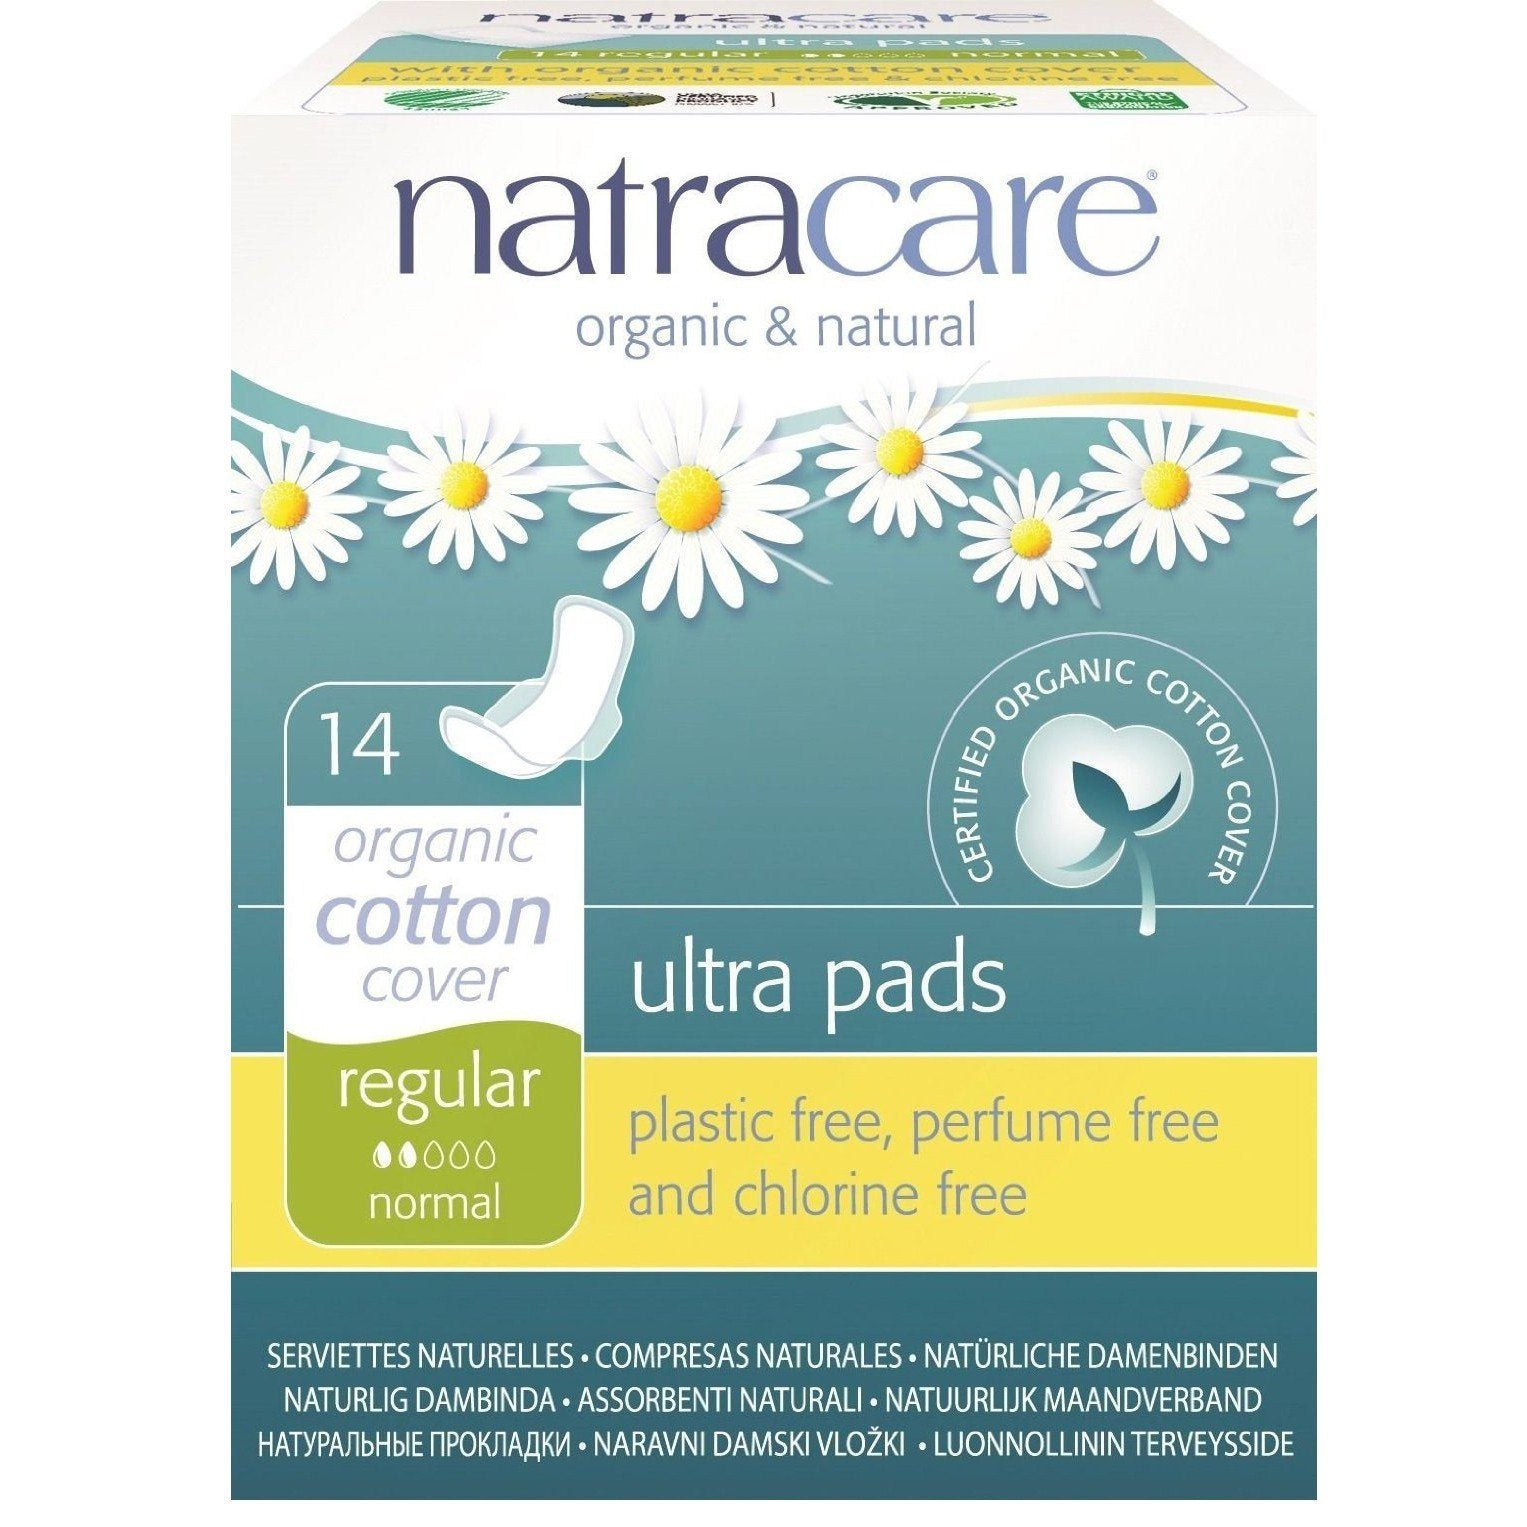 Personal Care - Natracare - Ultra W/wings - 14 Pads